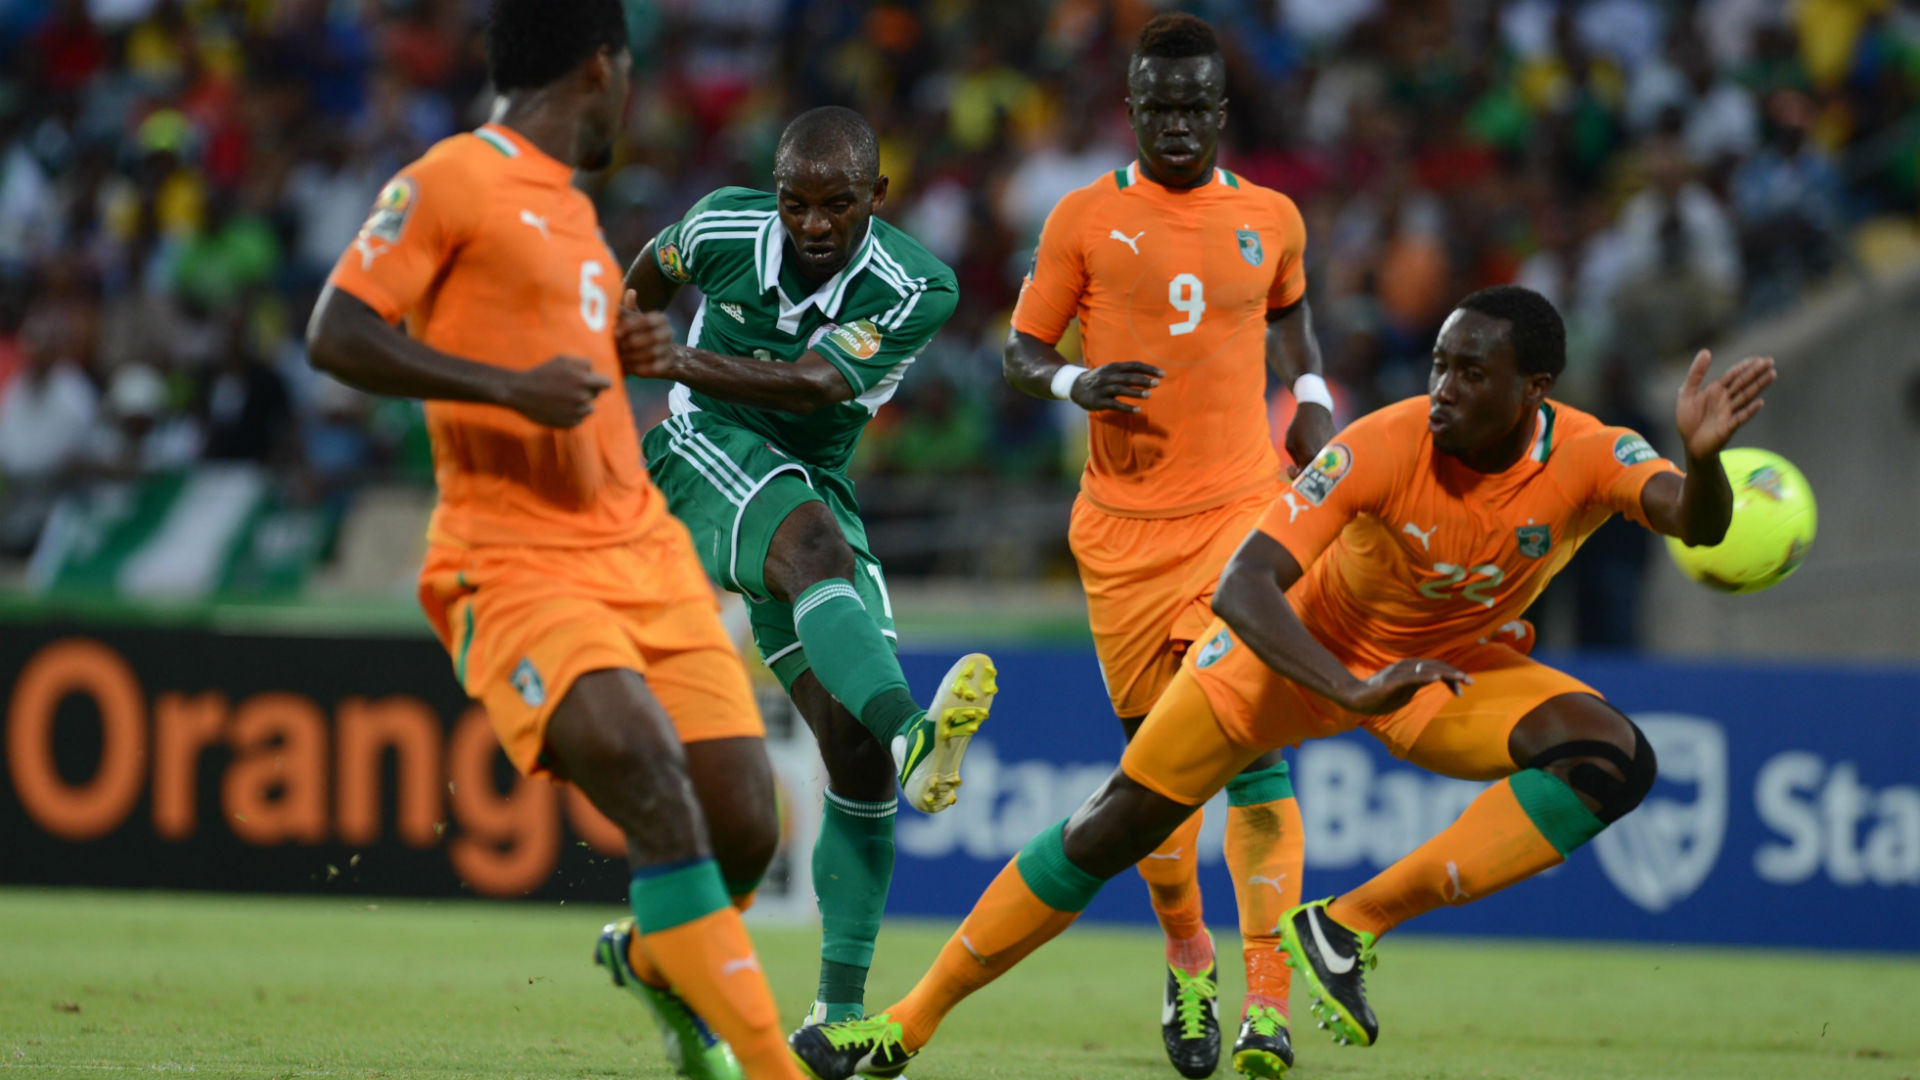 Sunday Mba scores winning goal against Cote d'Ivoire at Afcon 2013